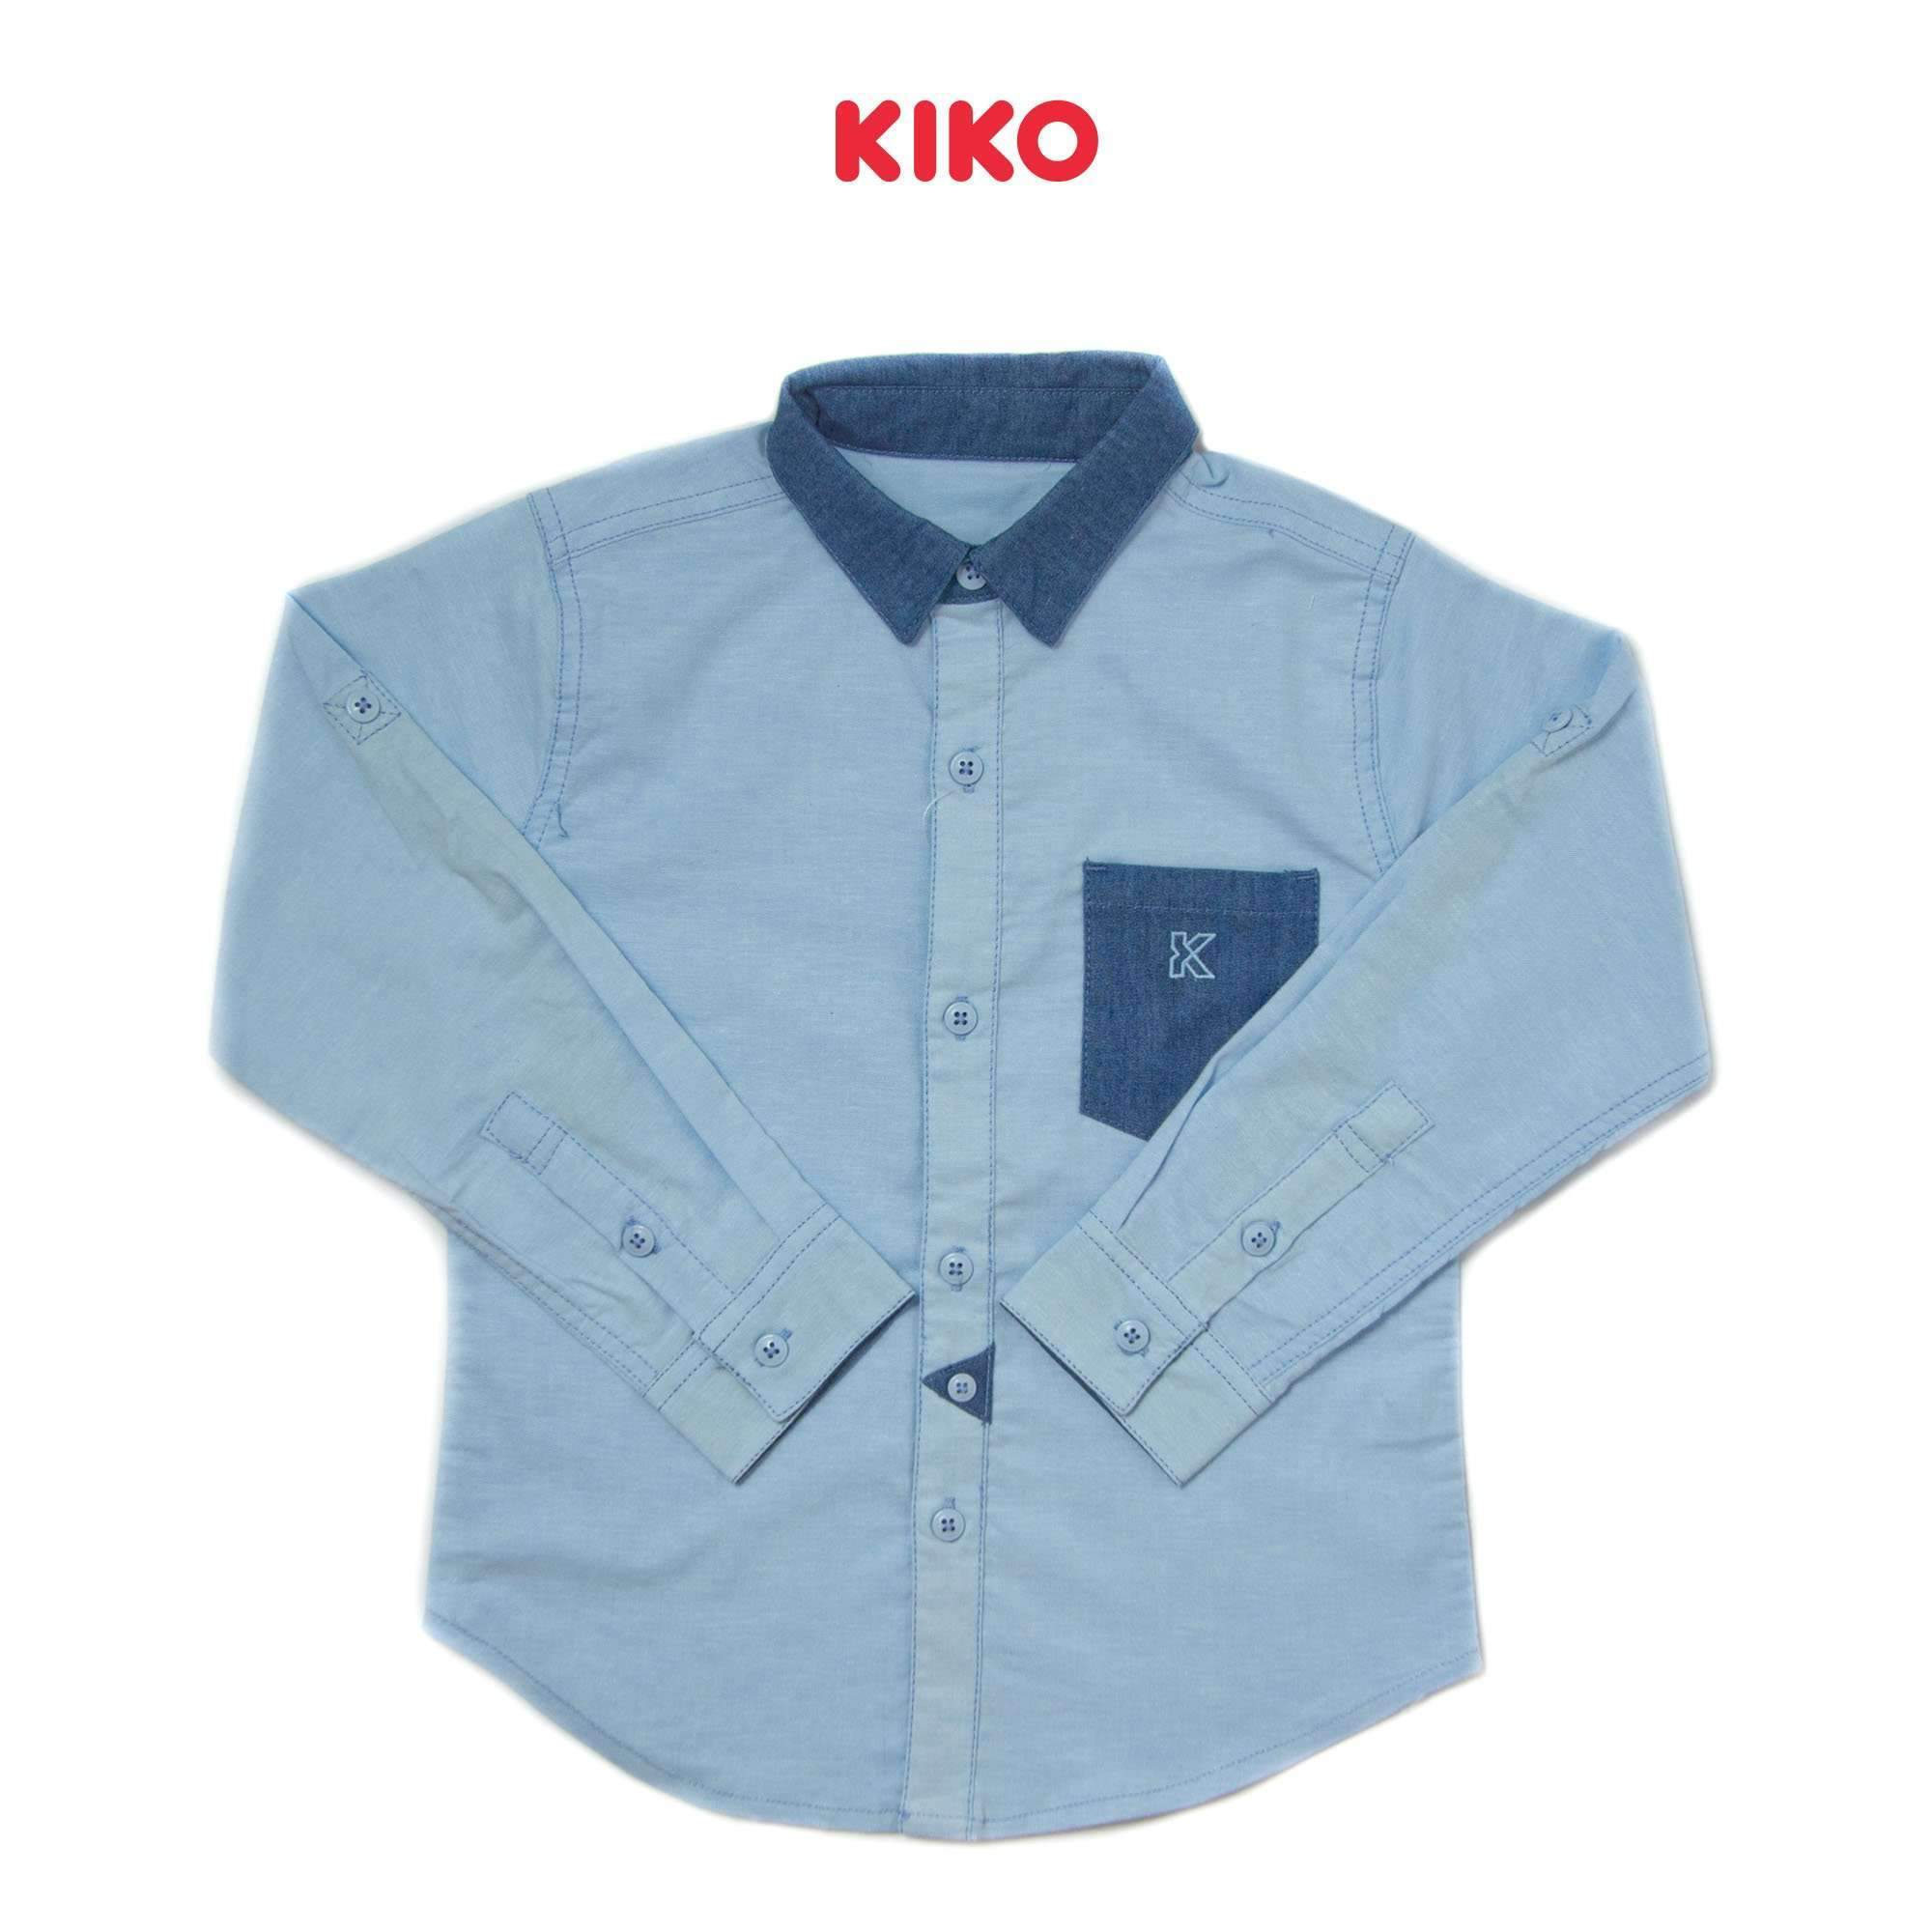 KIKO Boy Long Sleeve Shirt 110065-151 : Buy KIKO online at CMG.MY